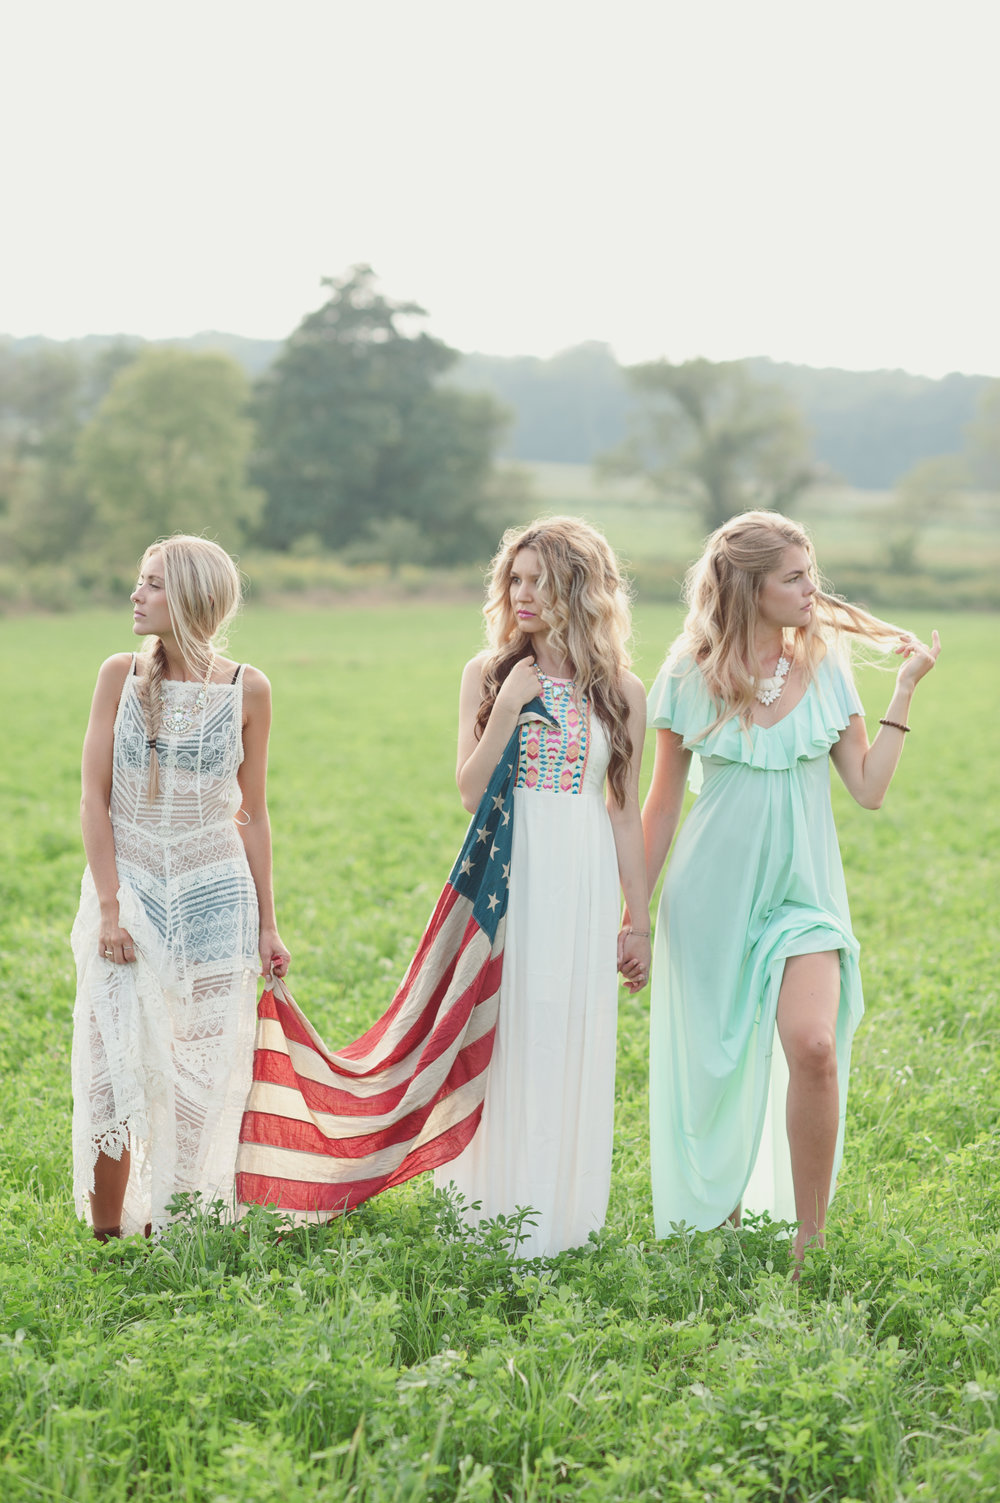 Girls gone nashville -